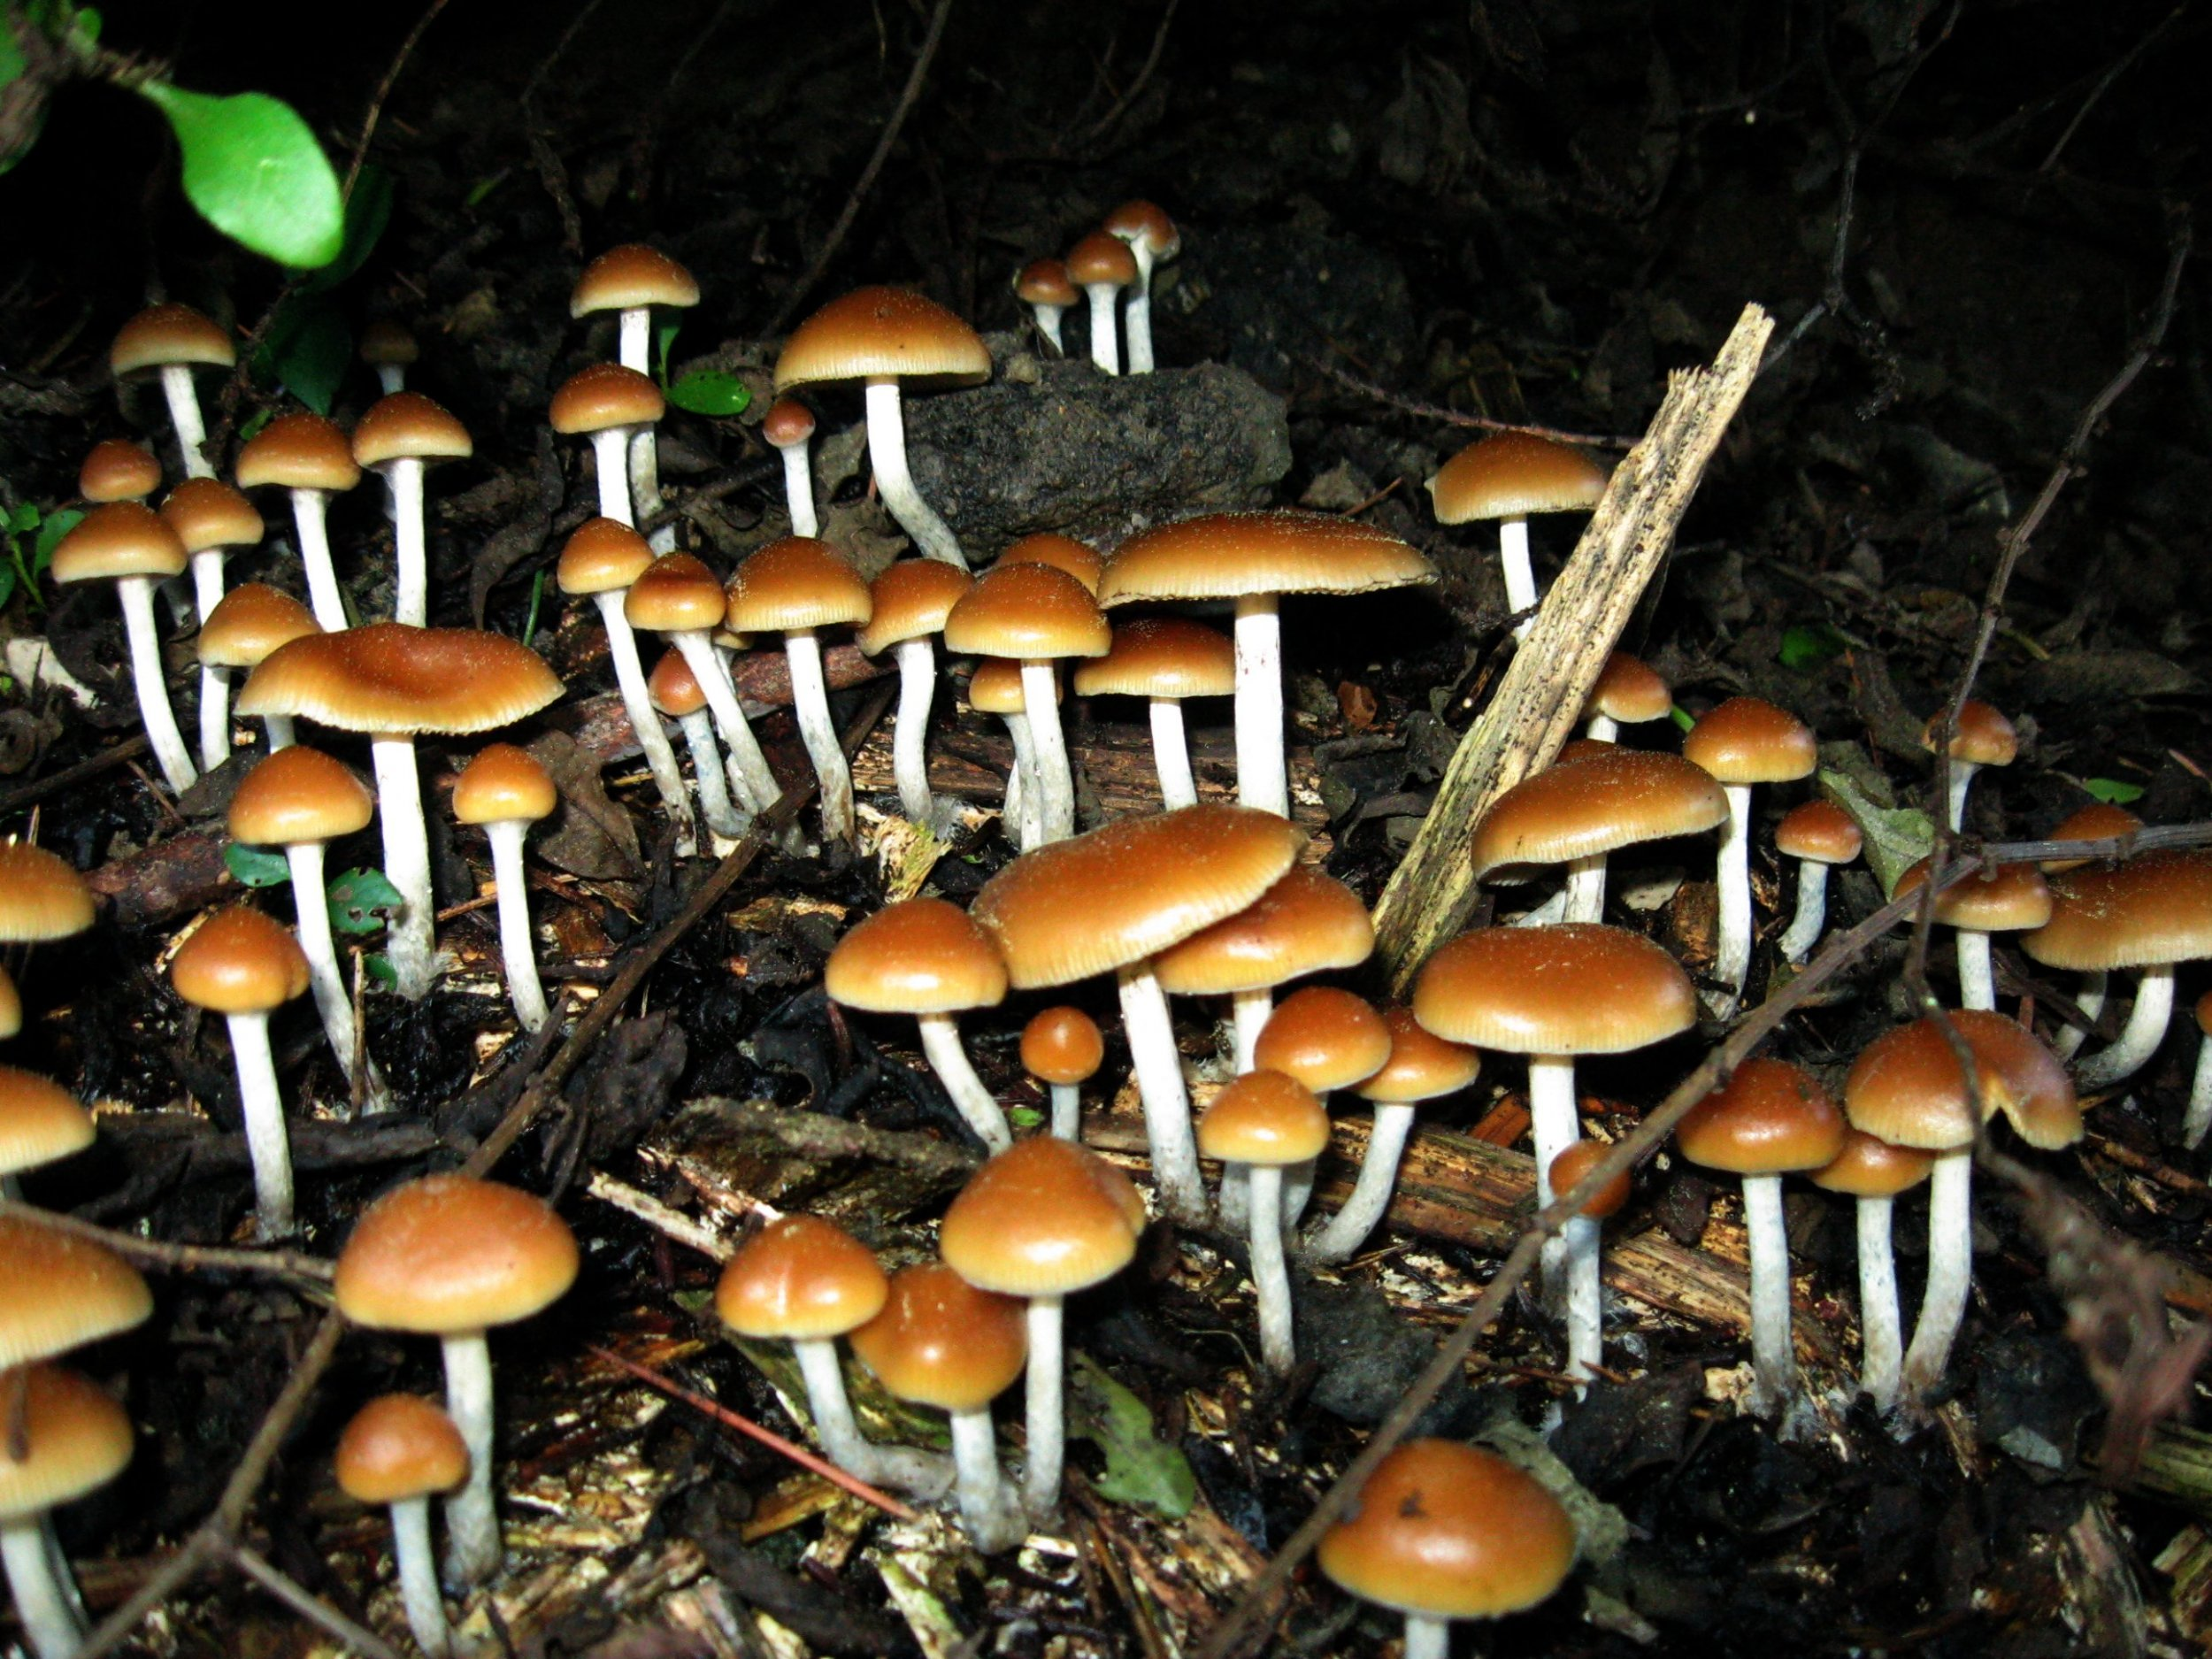 Scientists Discuss Merits of Psychedelics In Medicine